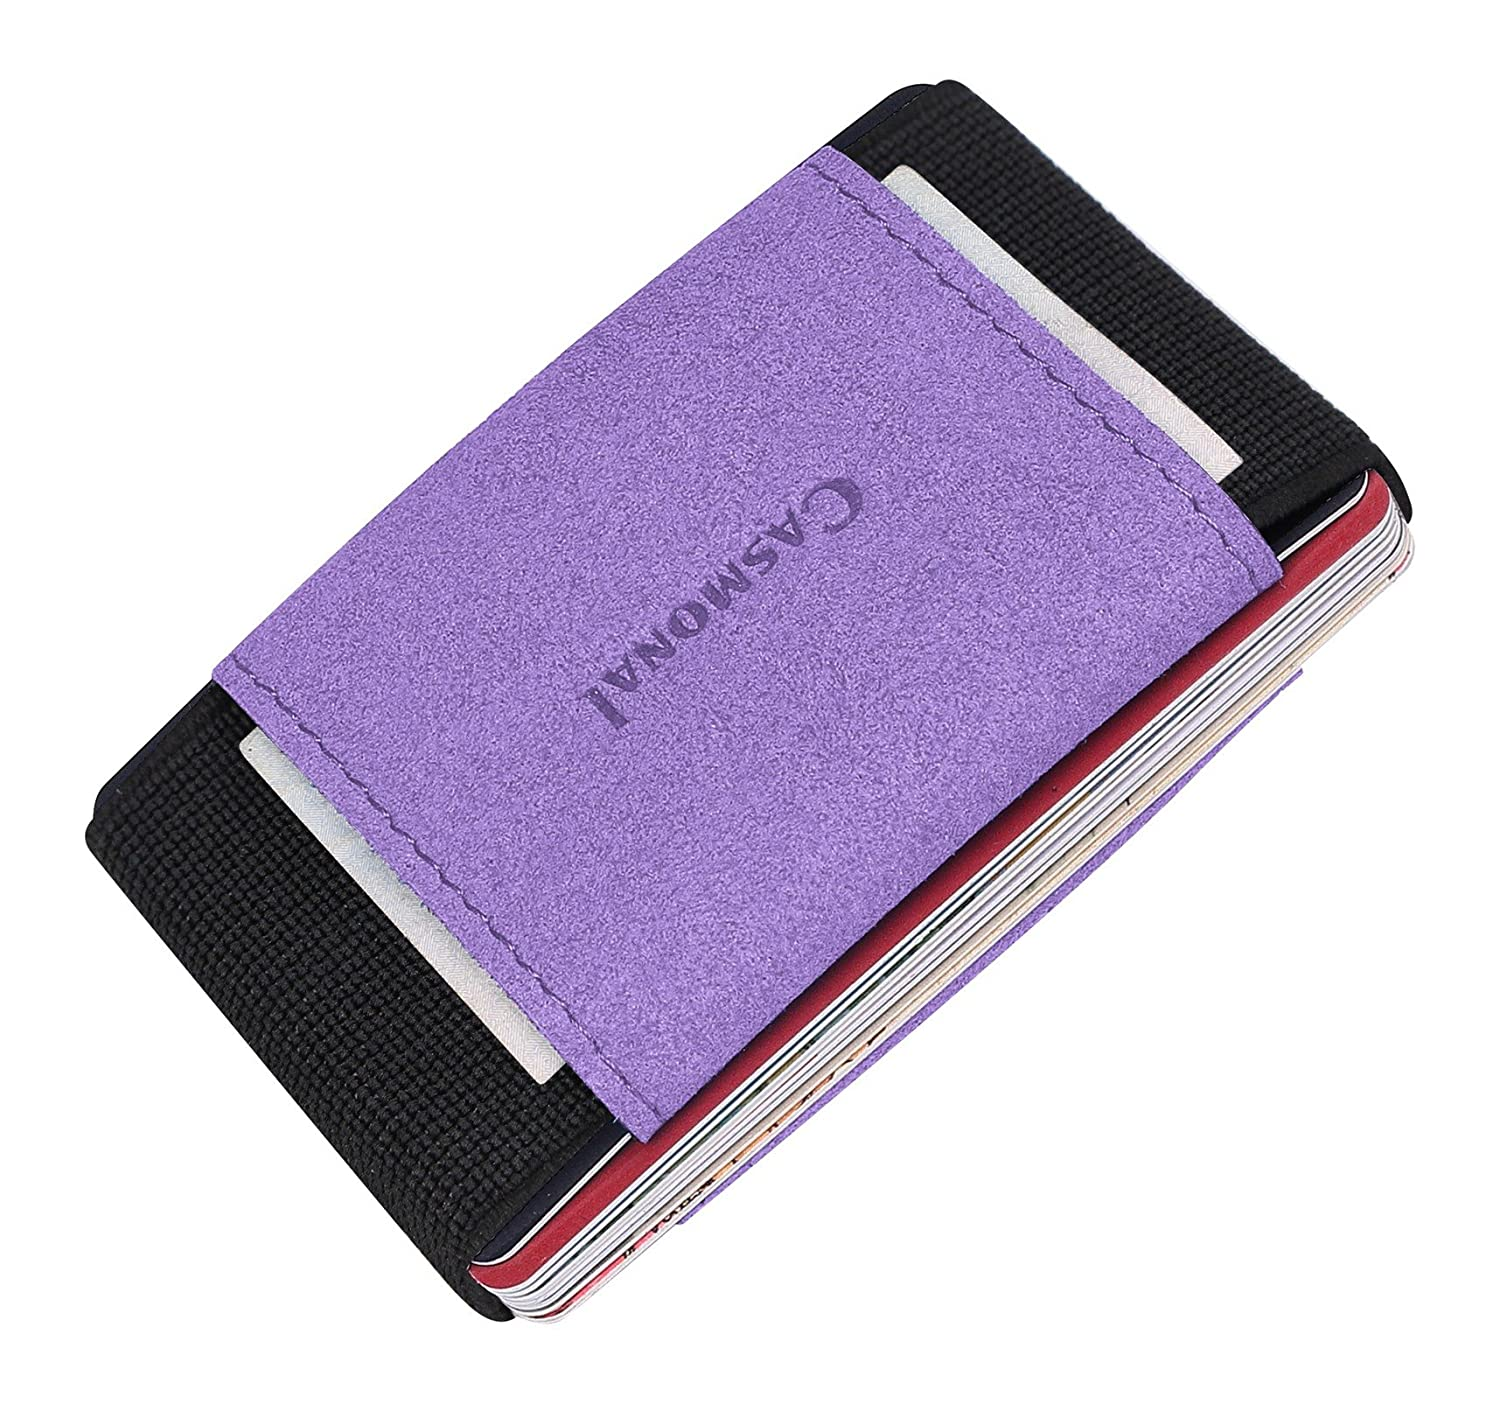 Casmonal Minimalist Slim Wallet With Elastic Front Pocket Card Holders And Cash cs00106